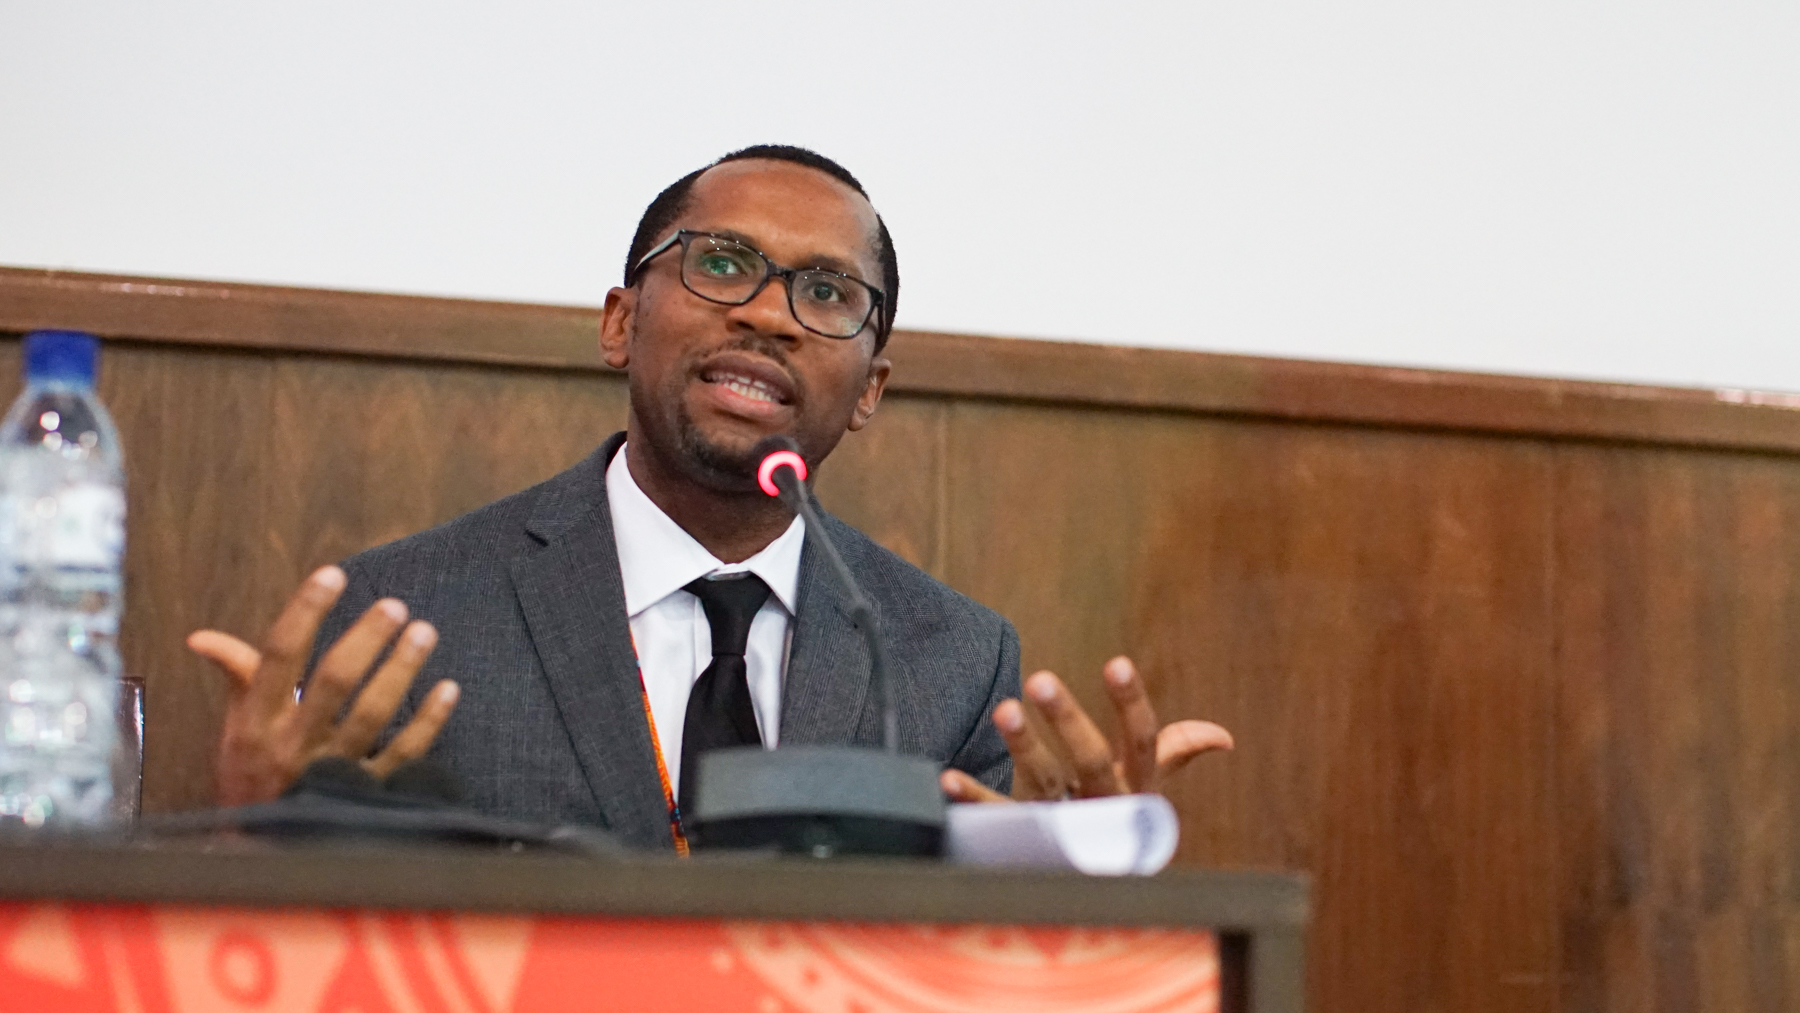 "Dr. Nmazuo ""Maz"" Ozuah speaks on a panel at the AORTIC Conference in Maputo, Mozambique in 2019. Ozuah is working with Global Hope with the goal of treating 4,000 new pediatric cancer patients in Malawi over the next five years. Expanding access to cancer treatment in Botswana and Uganda is also a goal of the collaboration."